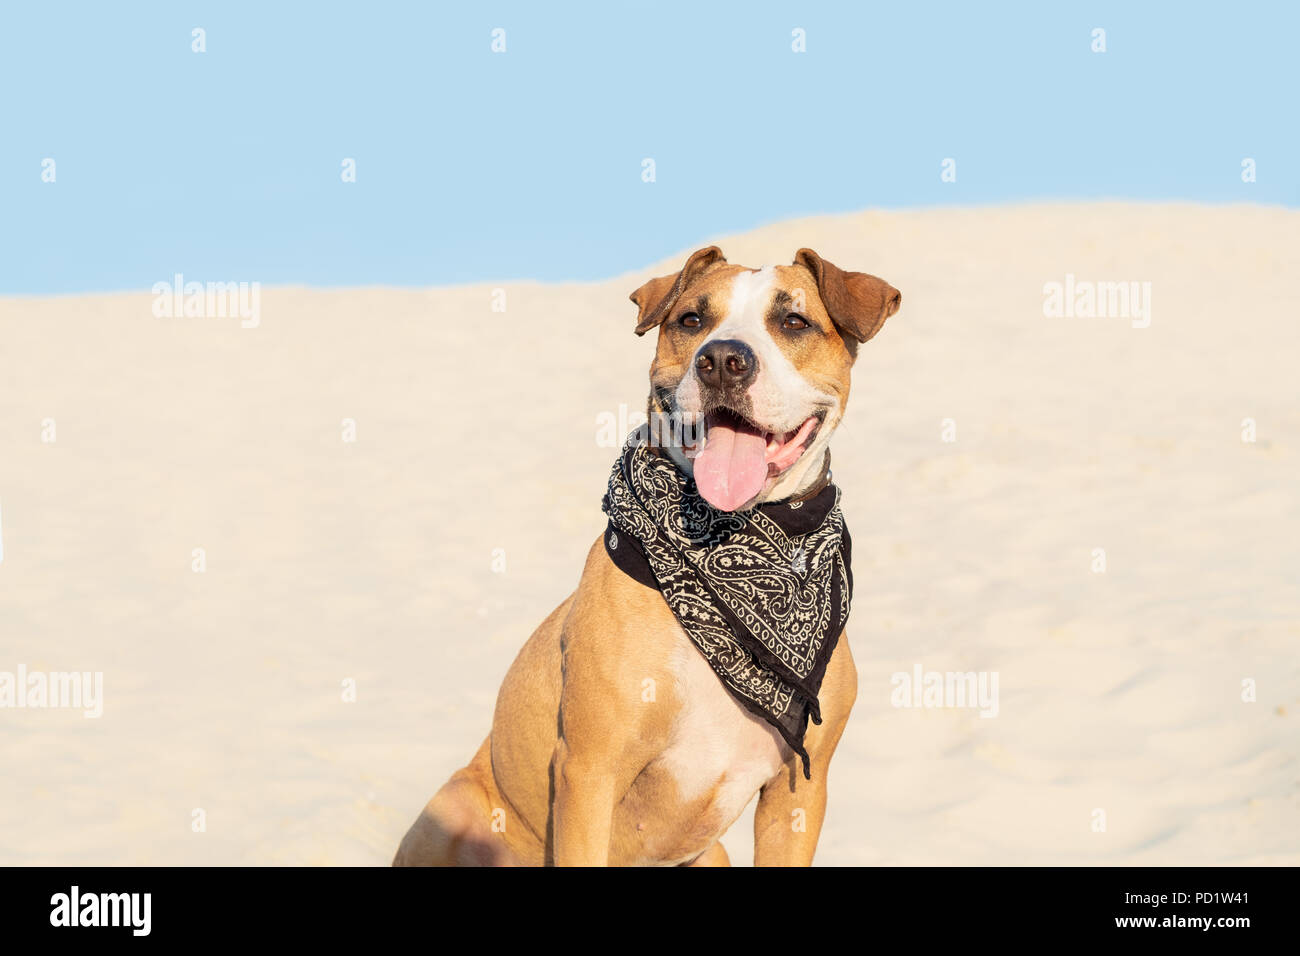 Beautiful dog in bandana sits in sand outdoors. Cute staffordshire terrier puppy in sandy beach or desert on hot summer day - Stock Image